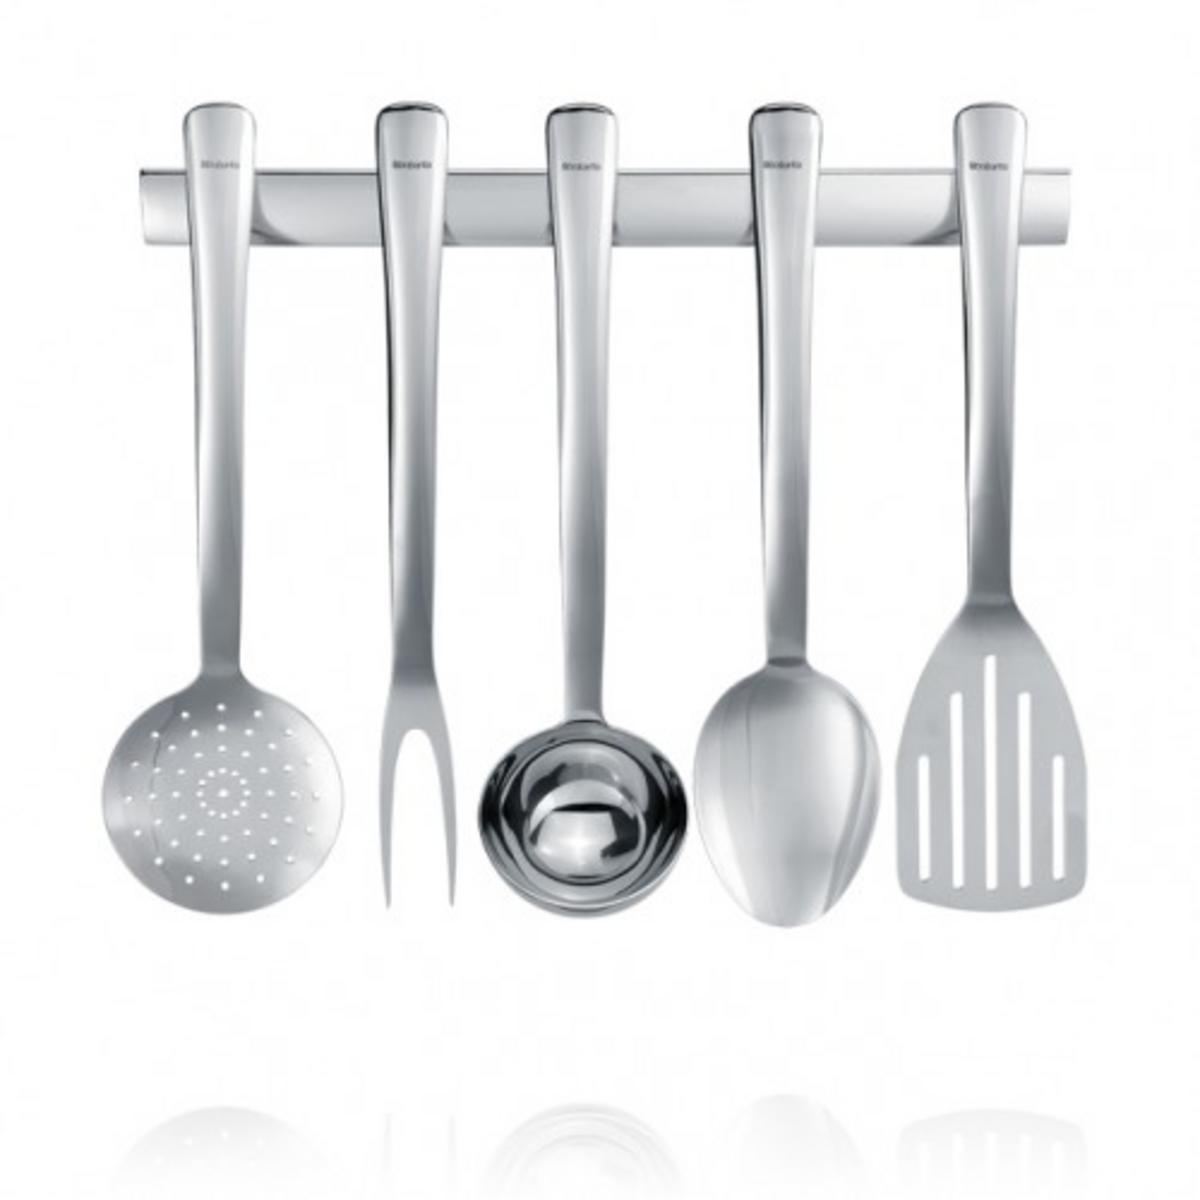 Kitchen design gallery list of kitchen utensils with pictures for Kitchen utensils list